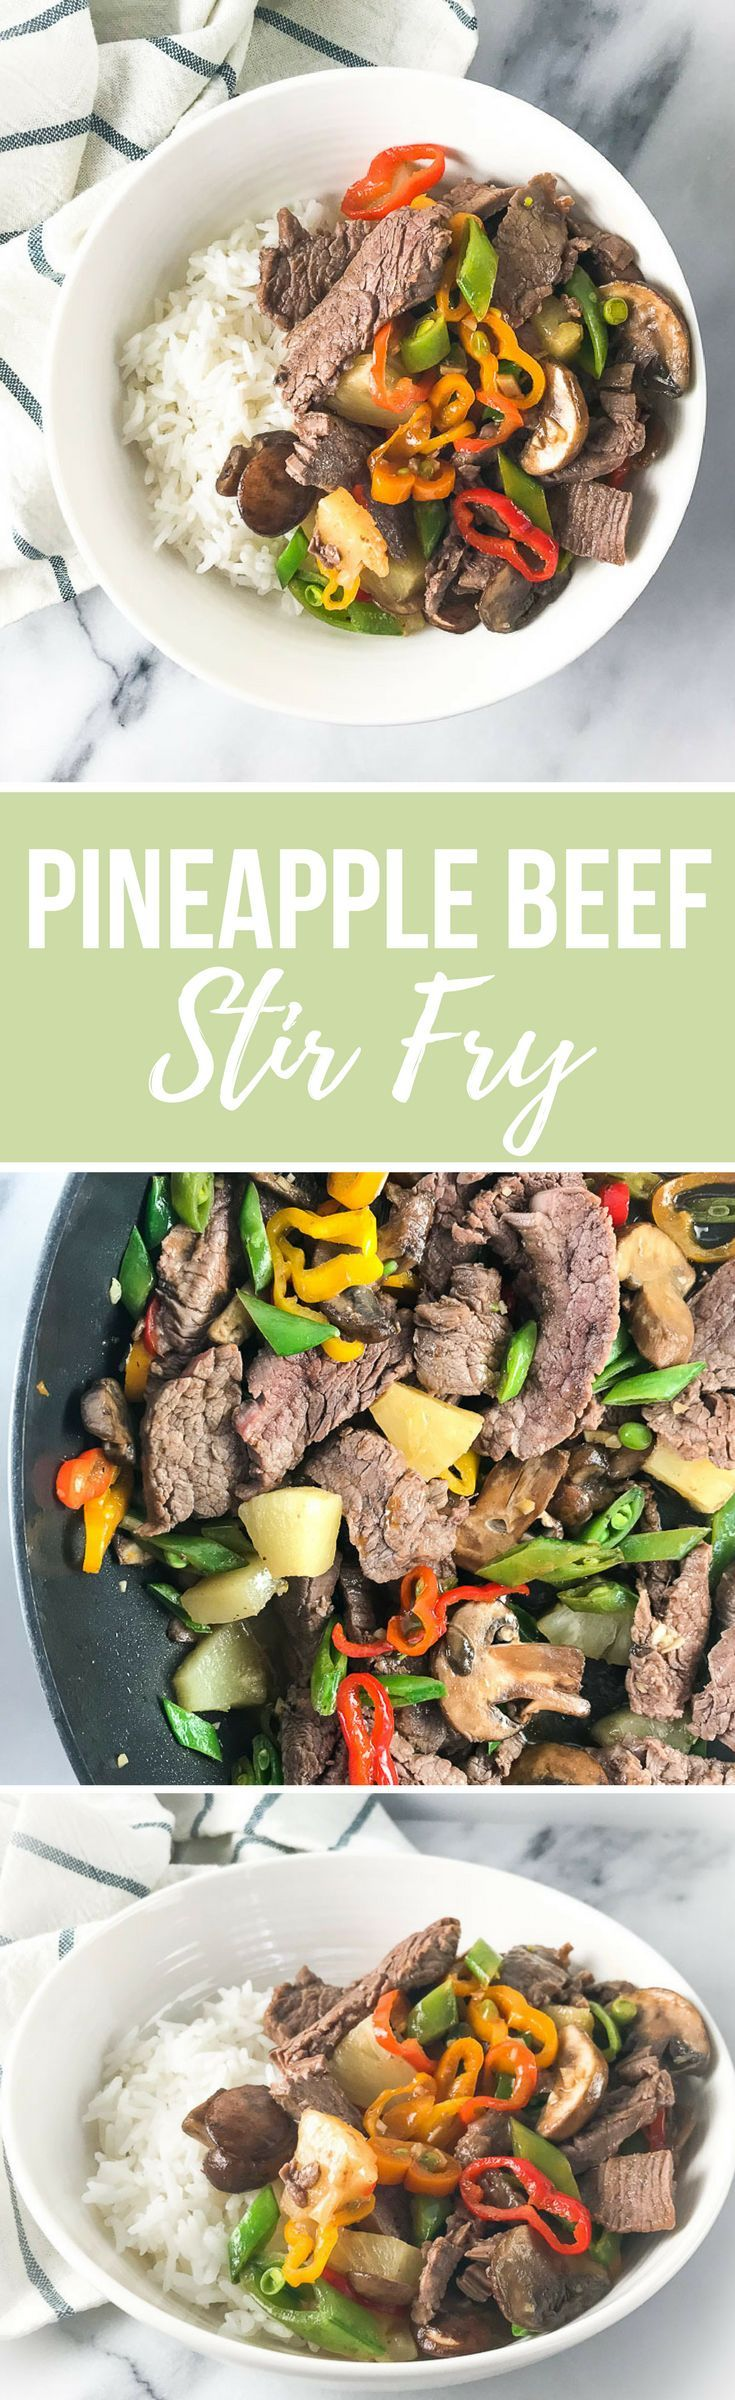 Understanding Beef Labeling + Pineapple Beef Stir Fry Recipe via RDelicious Kitchen @RD_Kitchen #sponsored by The Beef Checkoff #beef #stirfry #dinner #nutrition